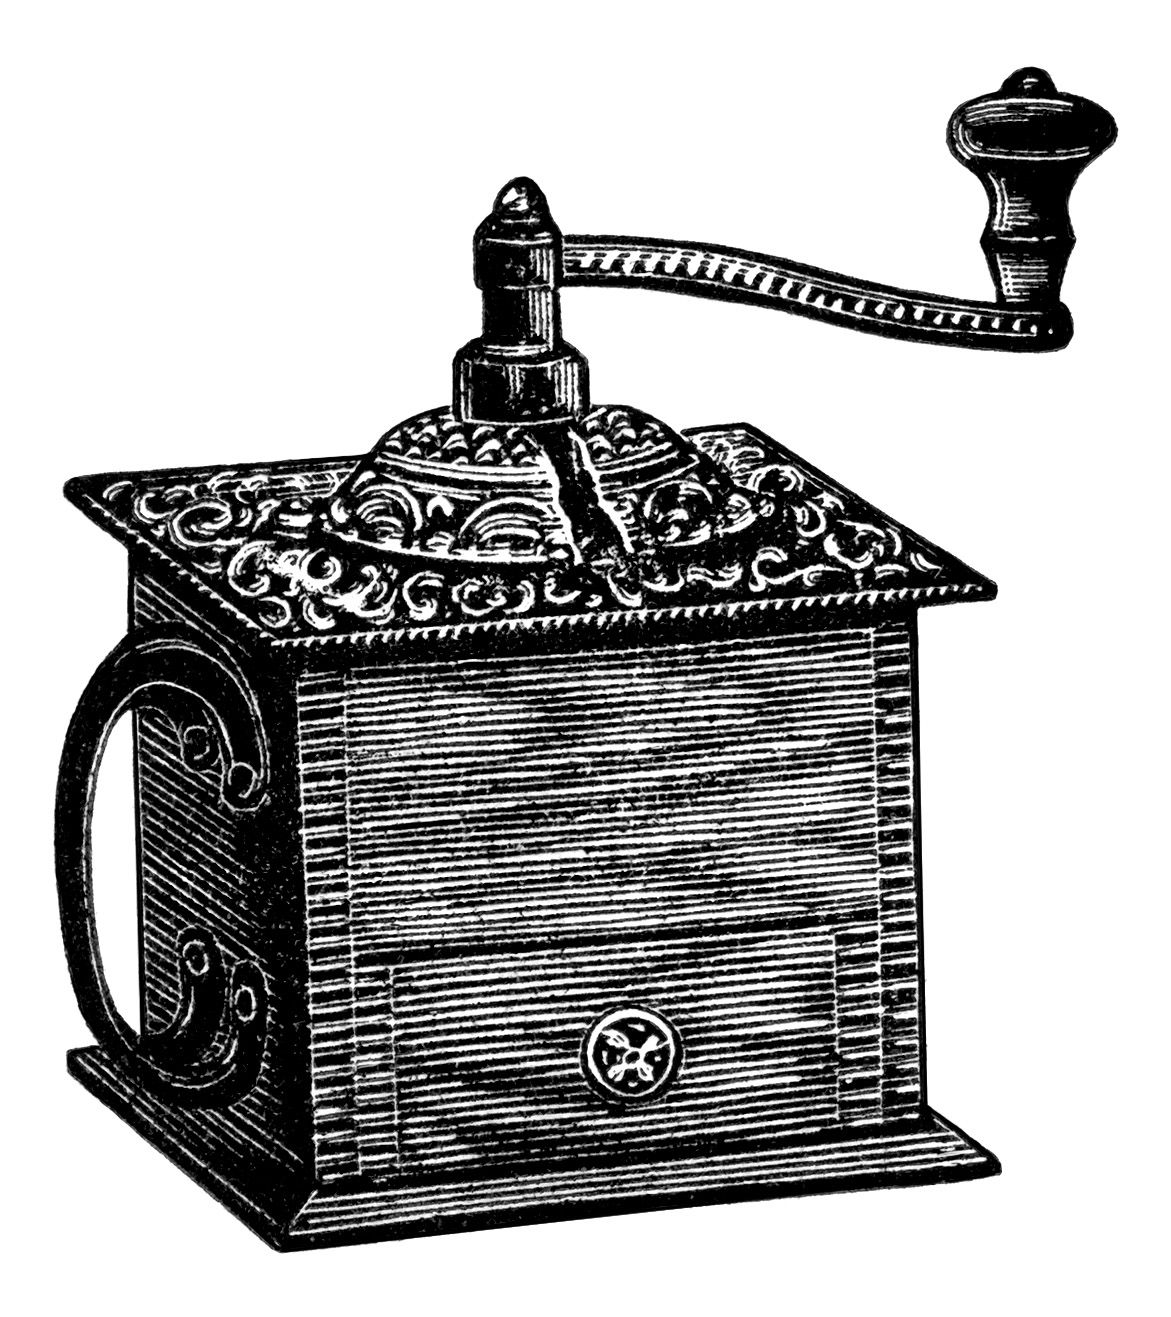 Coffee clipart vintage. Grinder black and white